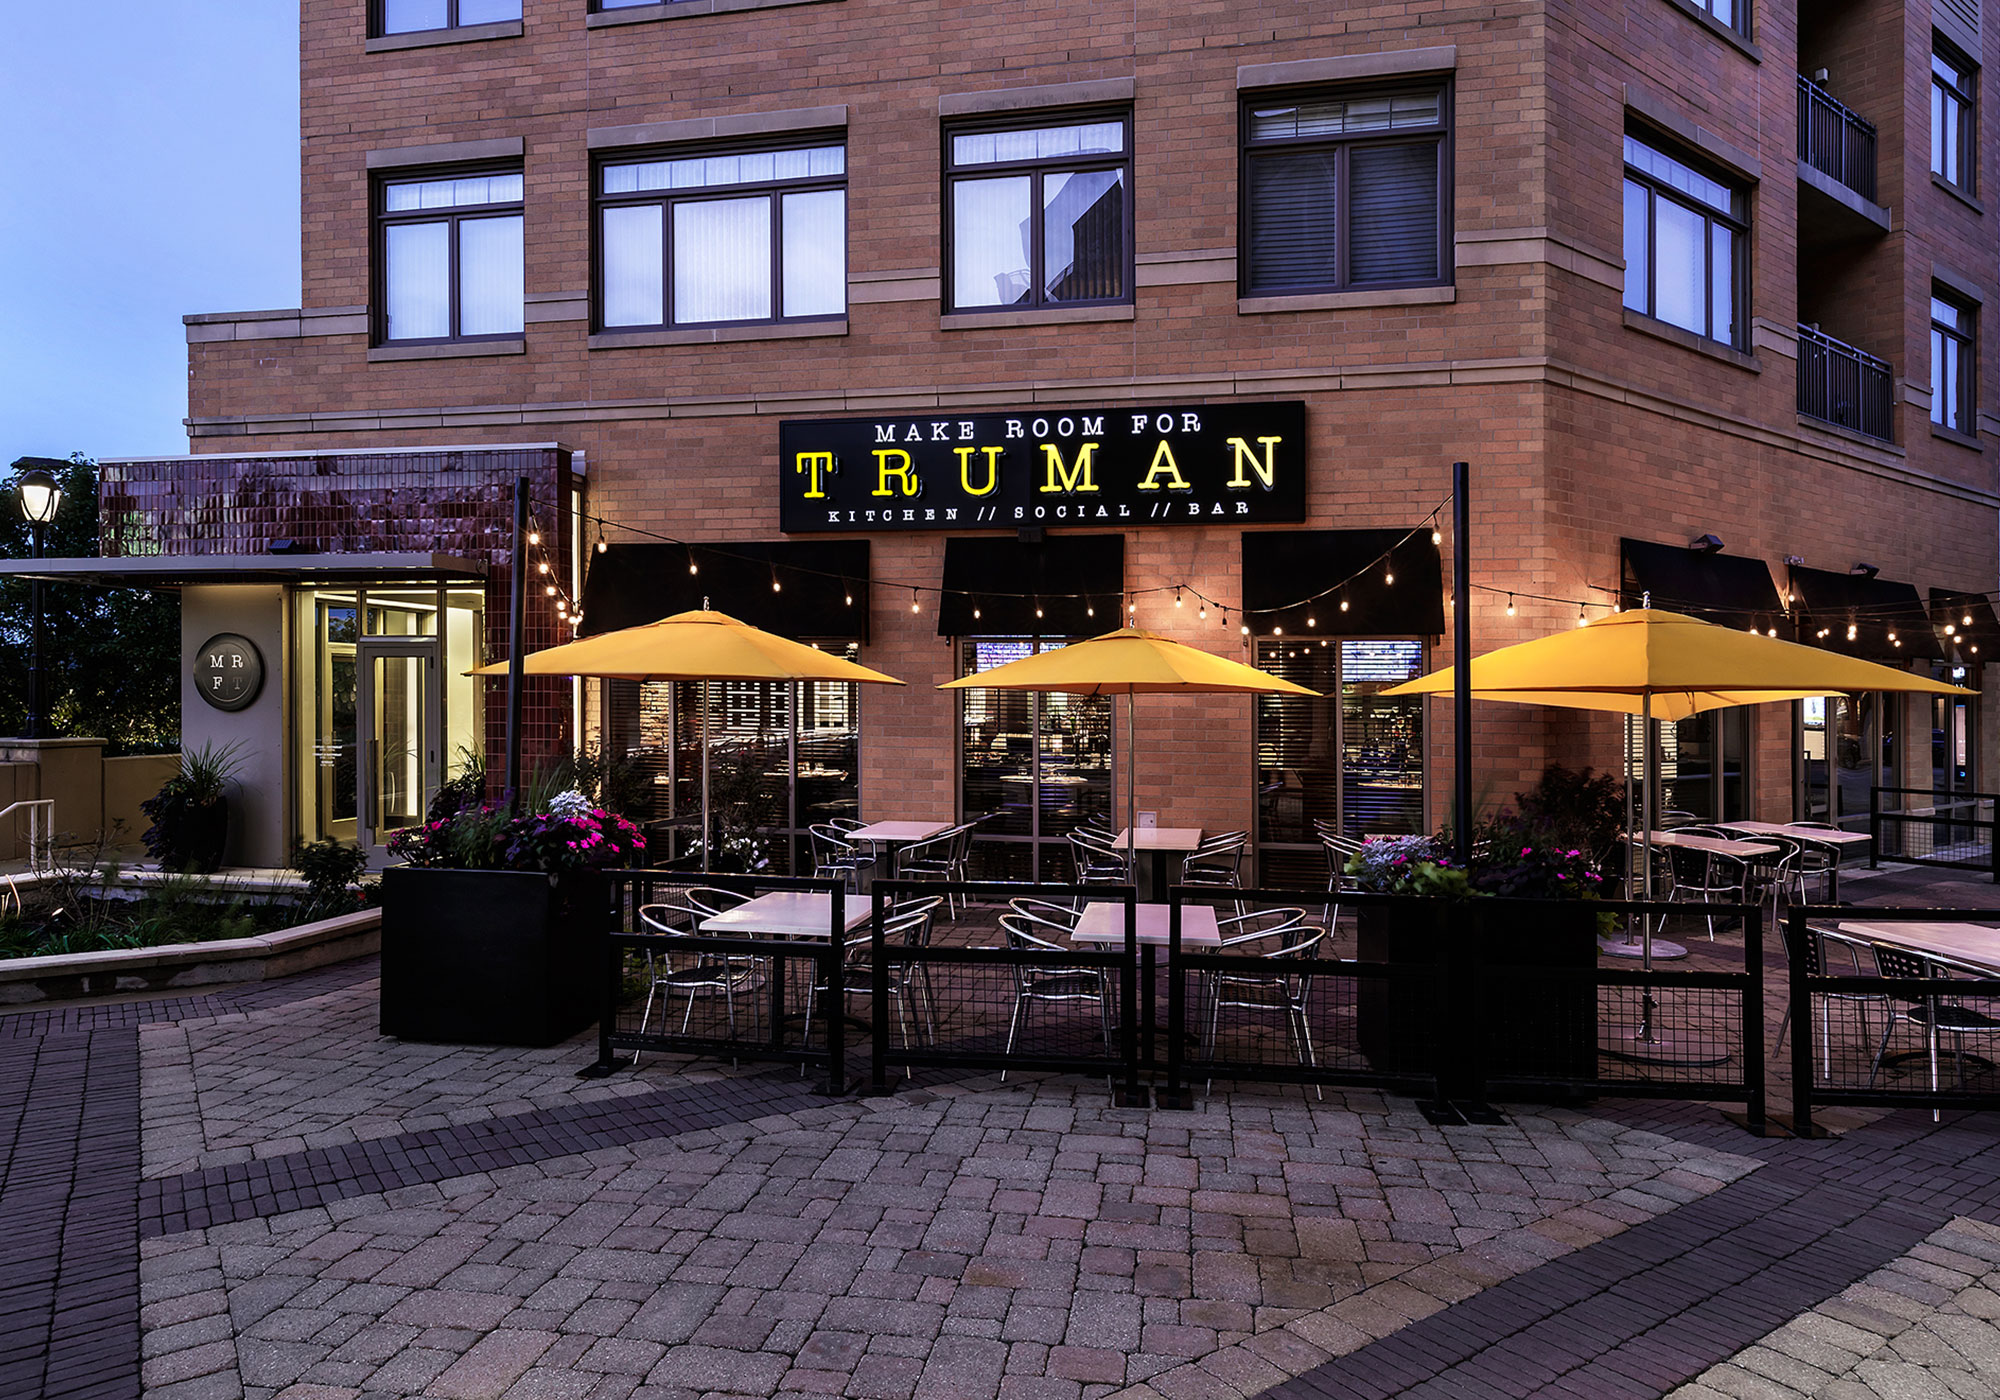 Make Room for Truman storefront in the twilight hour